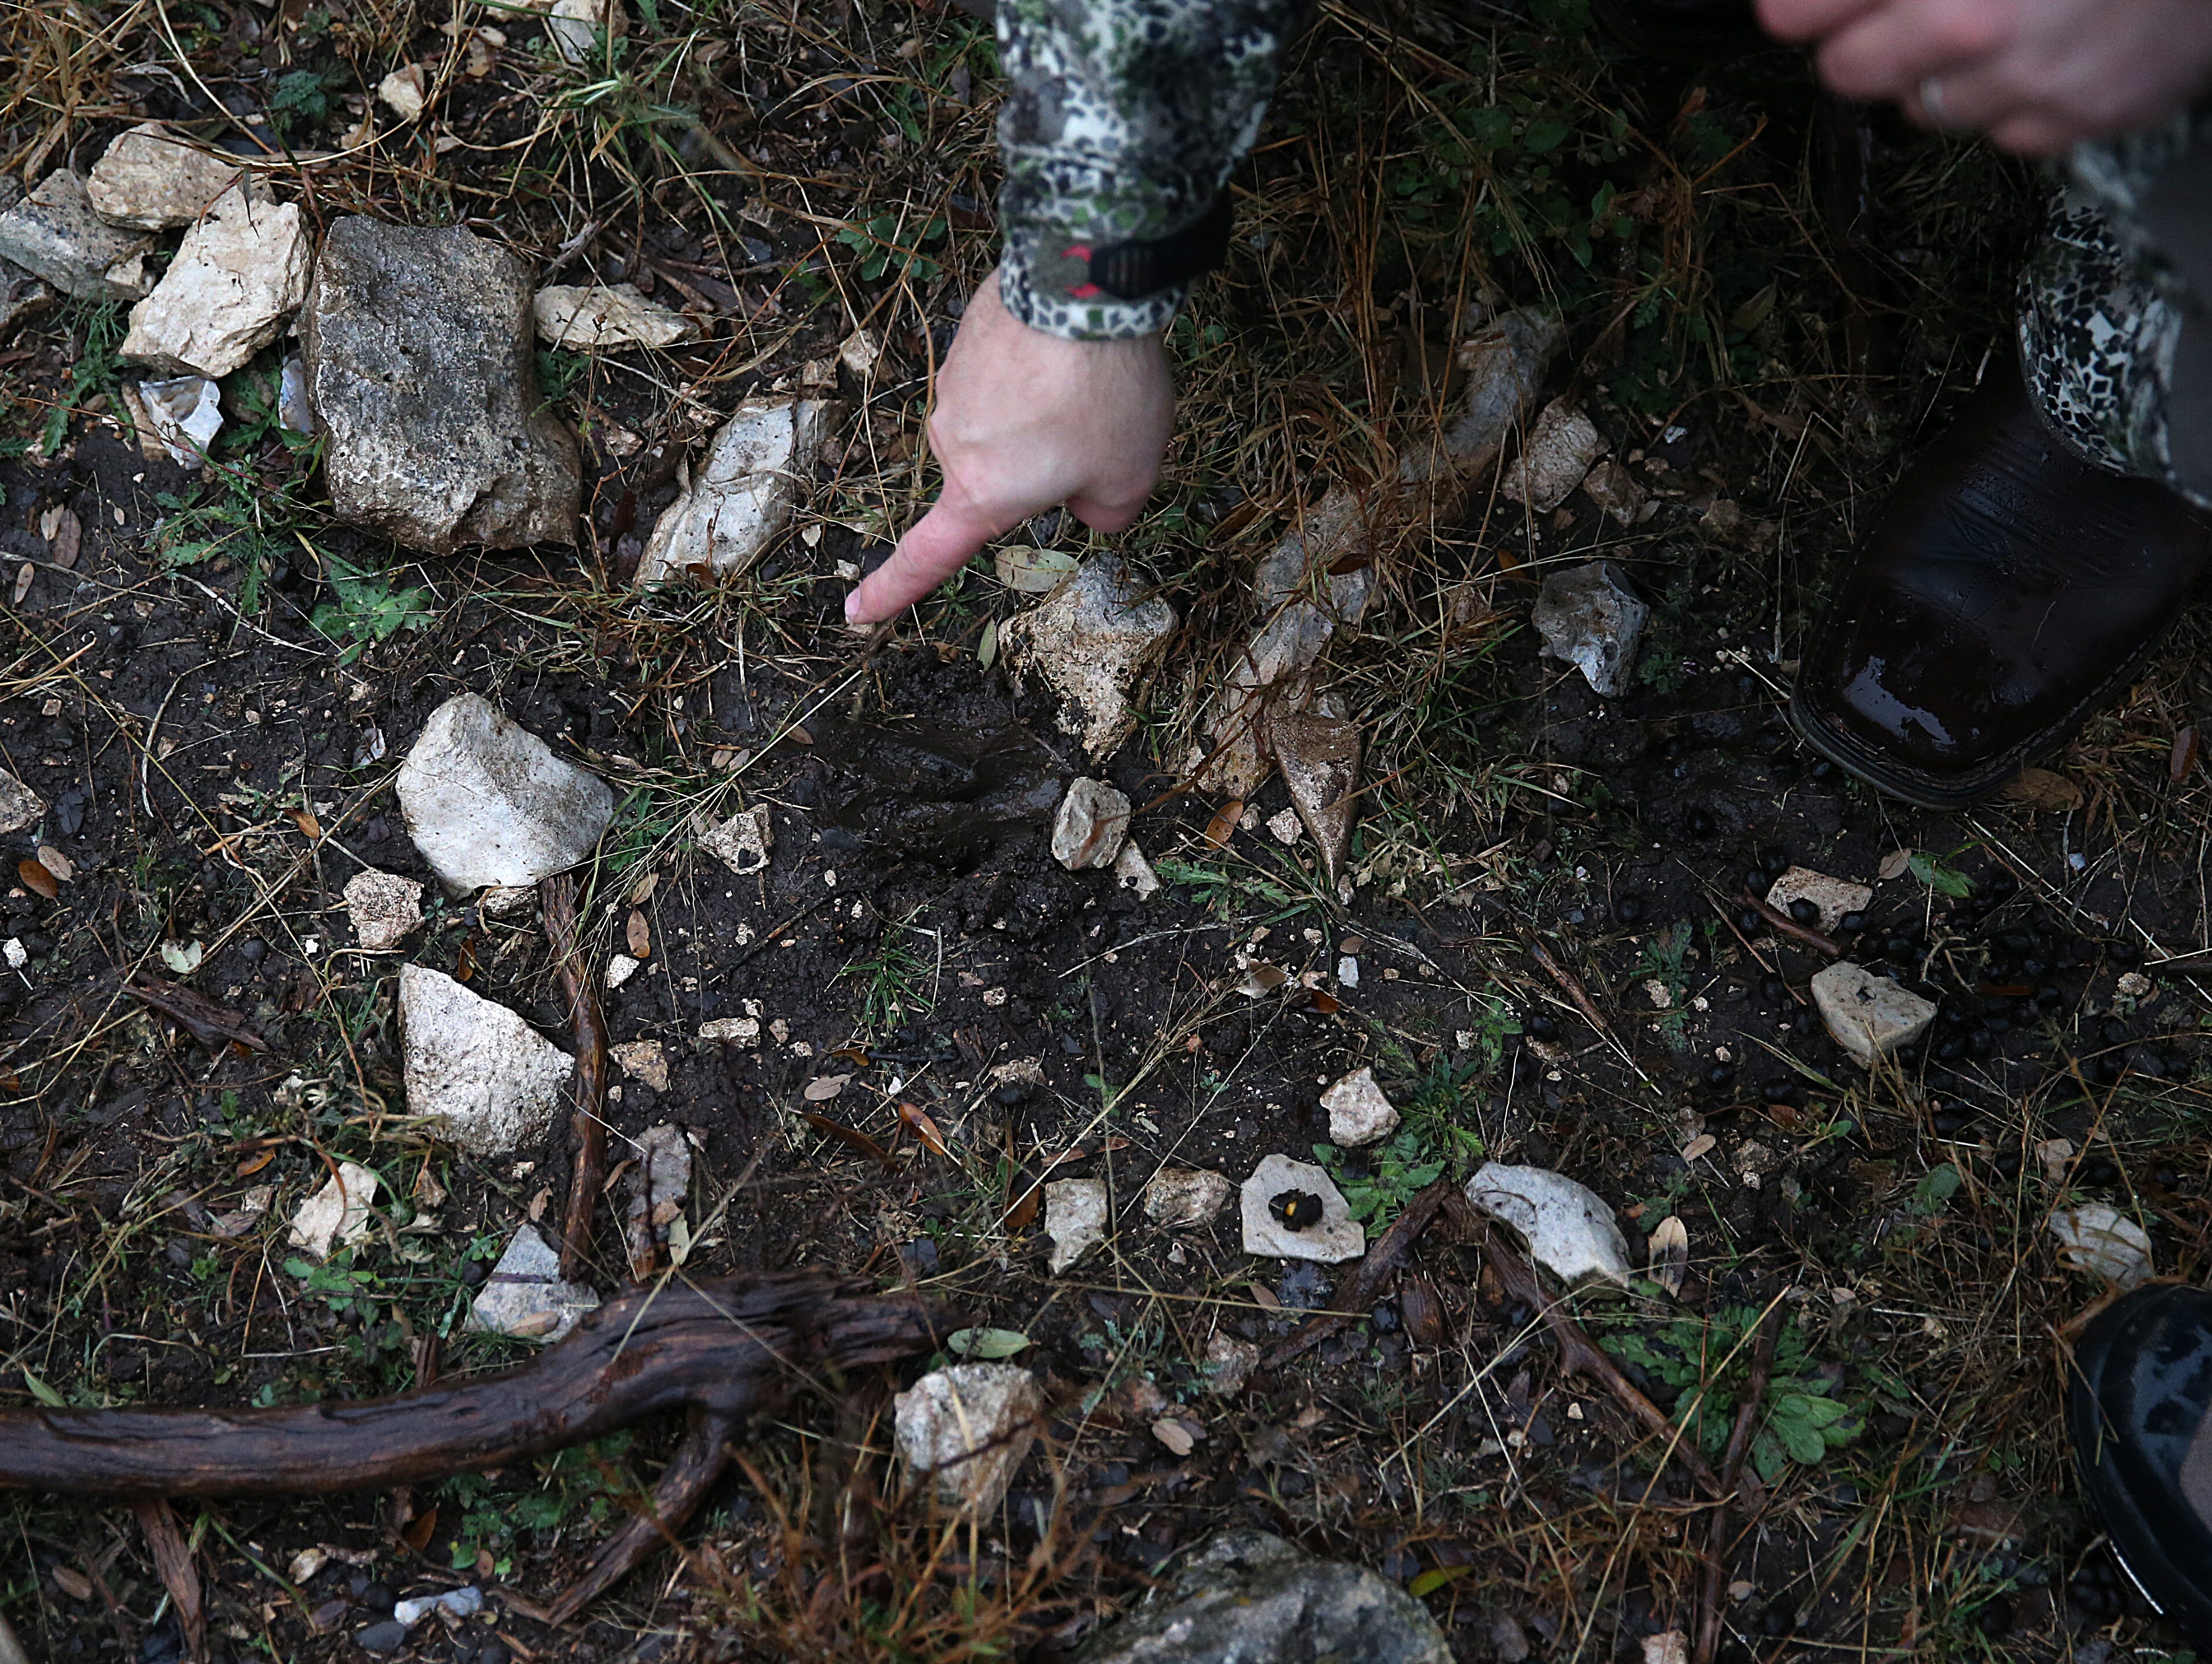 Deer hunters examine a deer print in the mud Friday, Dec. 7, 2018 during the annual deer hunt in Christoval sponsored by San Angelo Support for Veterans and Lone Star Warriors Outdoors.